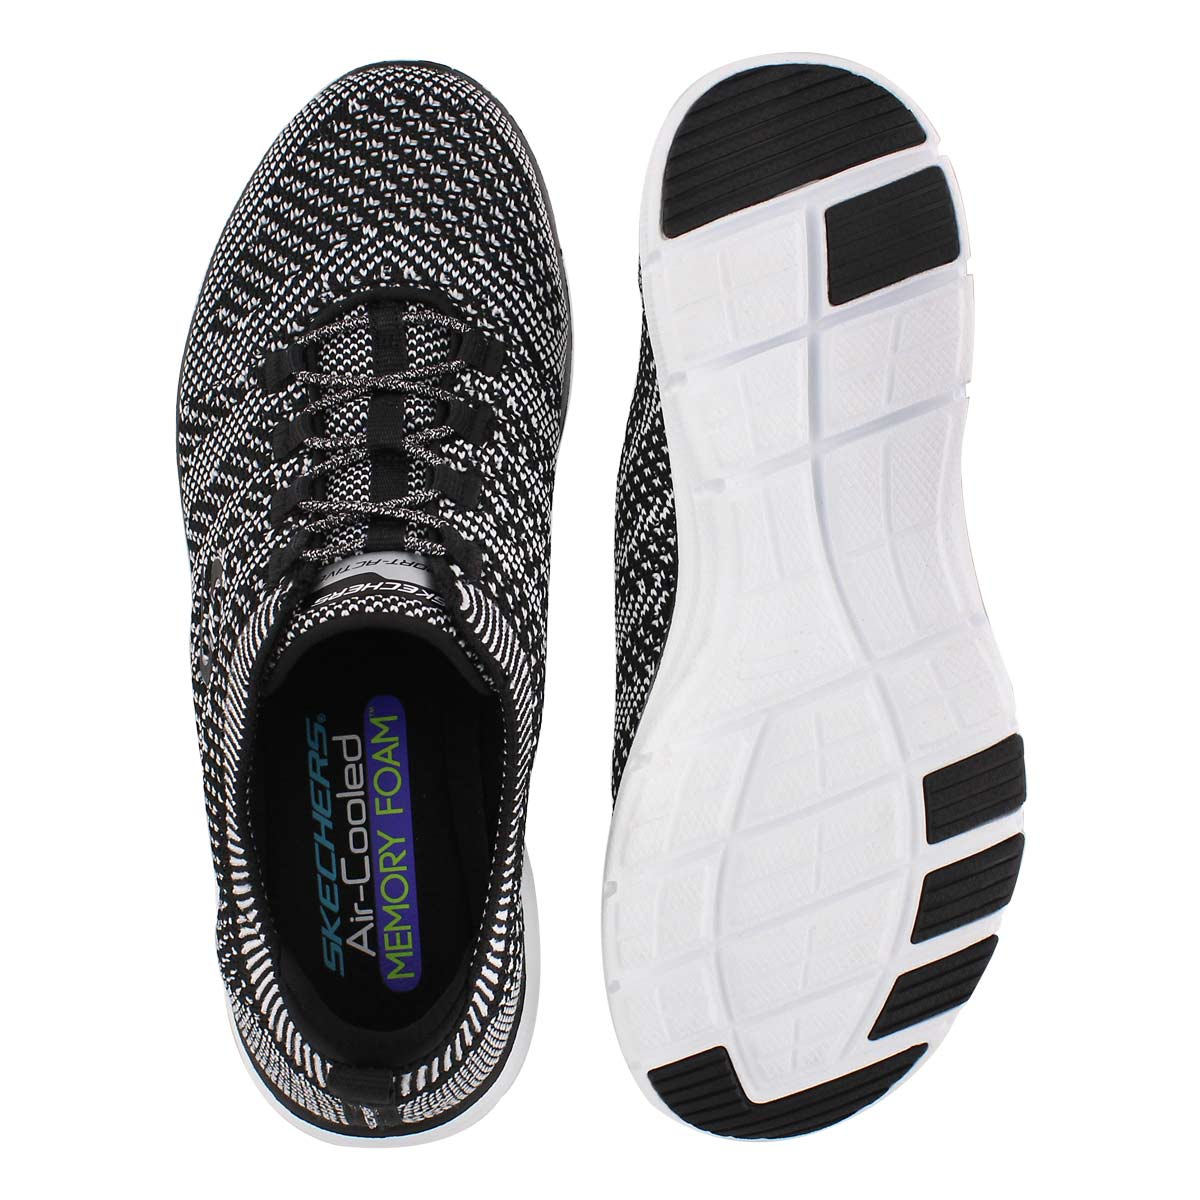 Lds Galaxies blk/wht bungee slip on snkr